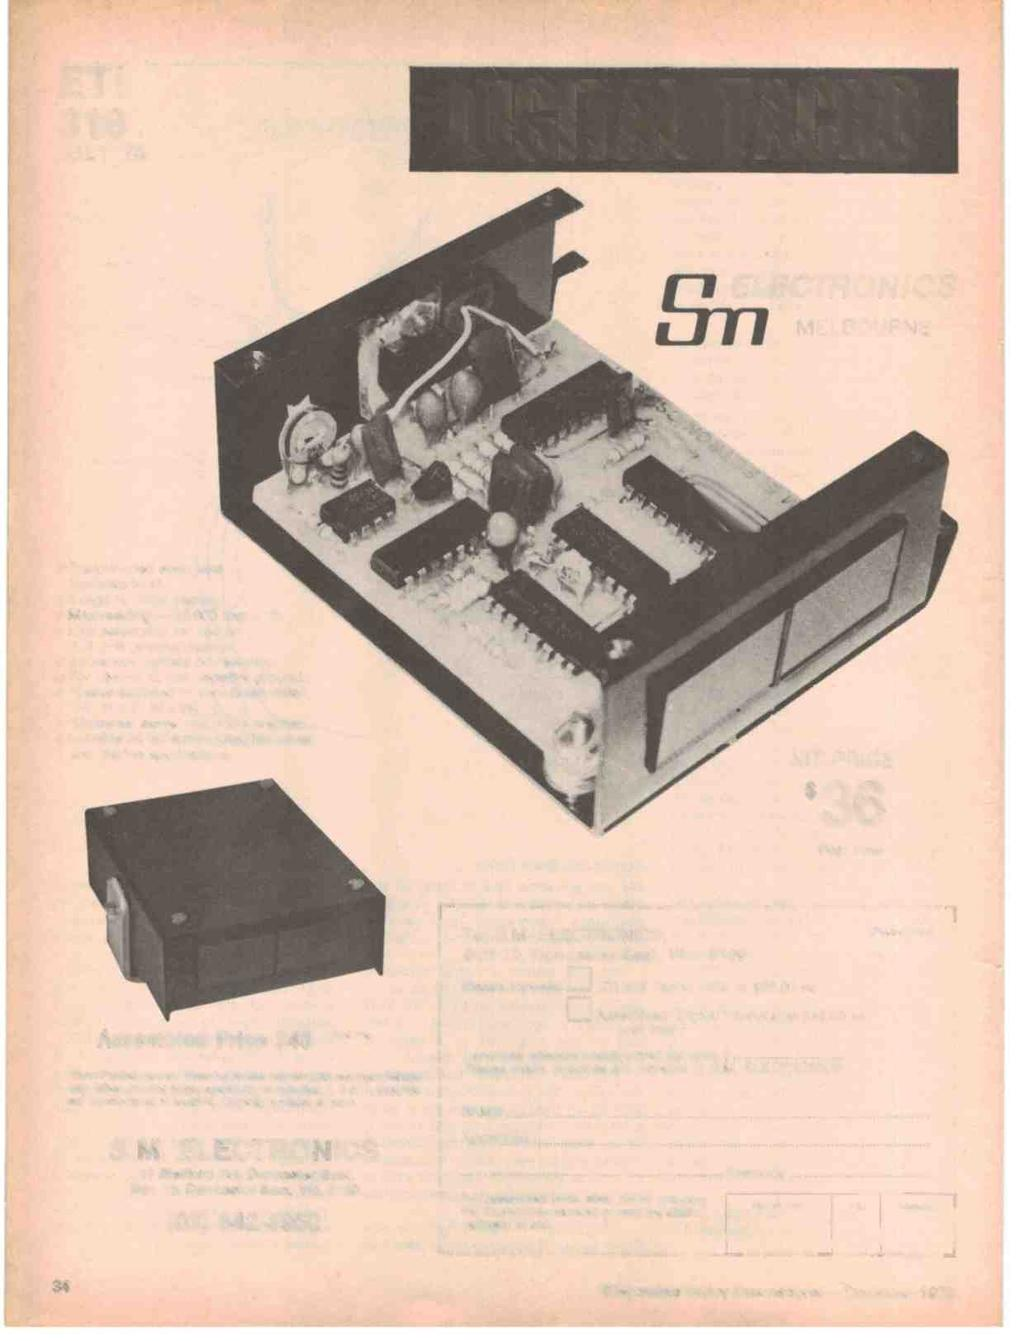 ". ETI 318 JULY '78 DIGITAL TACHO,ELECTRONICS MELBOURNE ti r { Fr,,! 1 r...,,.] ::::.'-.,,.a a 311, Pre -punched steel case included in kit. 4 digit t/º"" high display., Max reading - 10,000 rpm x 10."